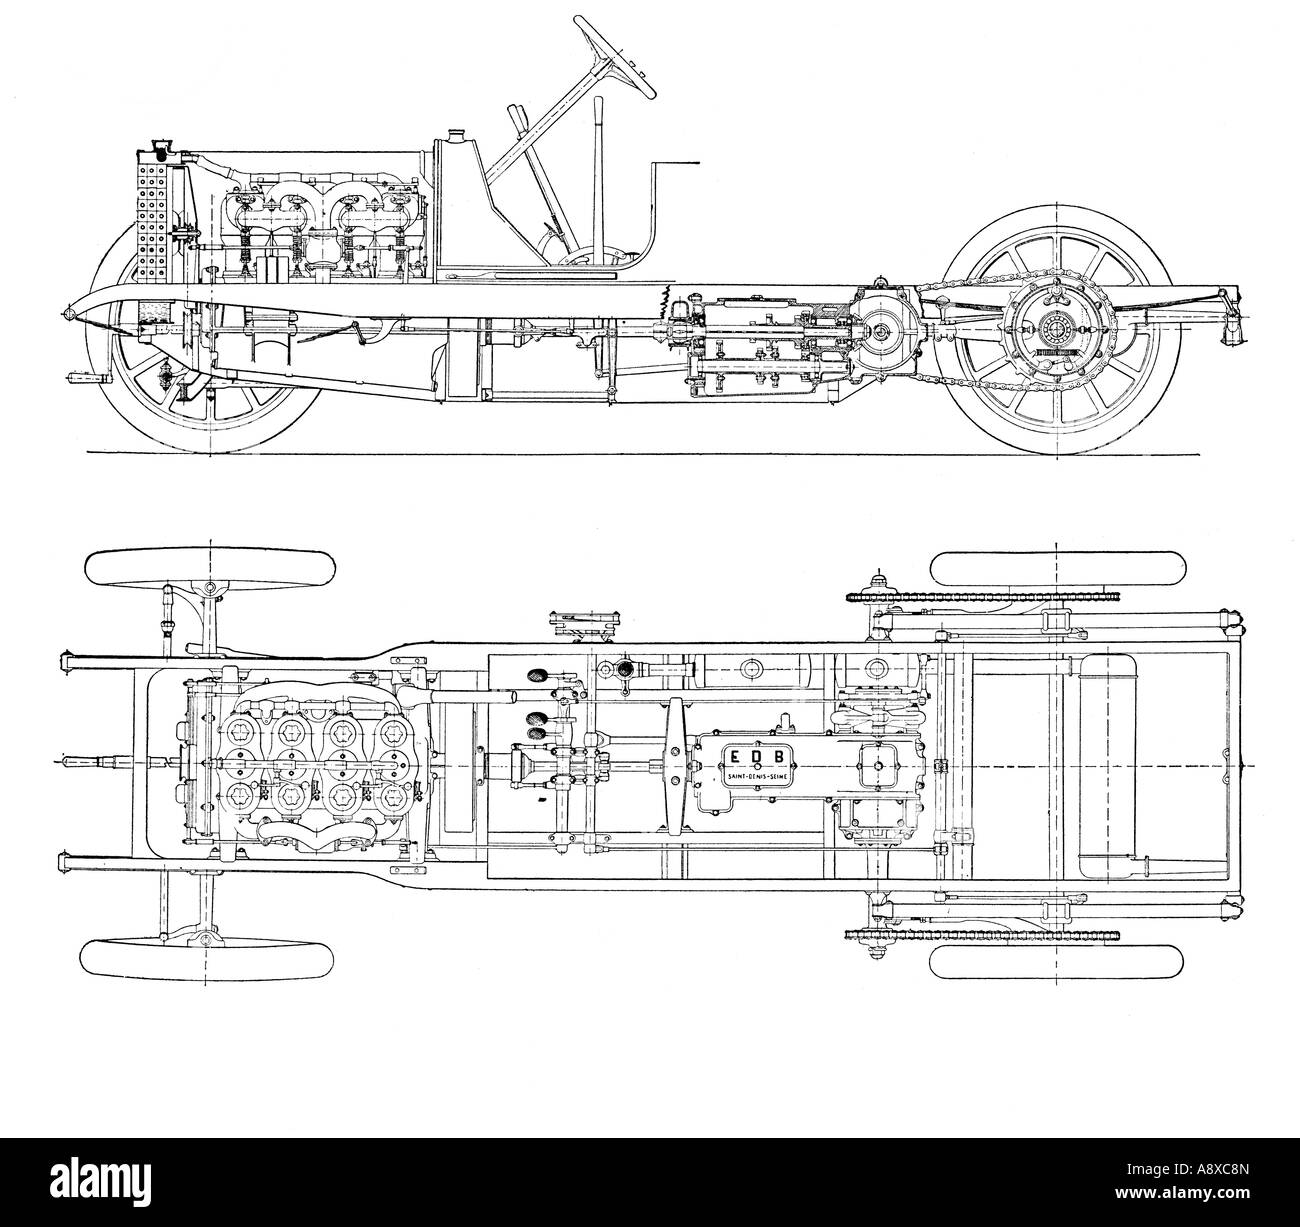 four cylinder engine diagram ford ranger 4 cylinder engine diagram